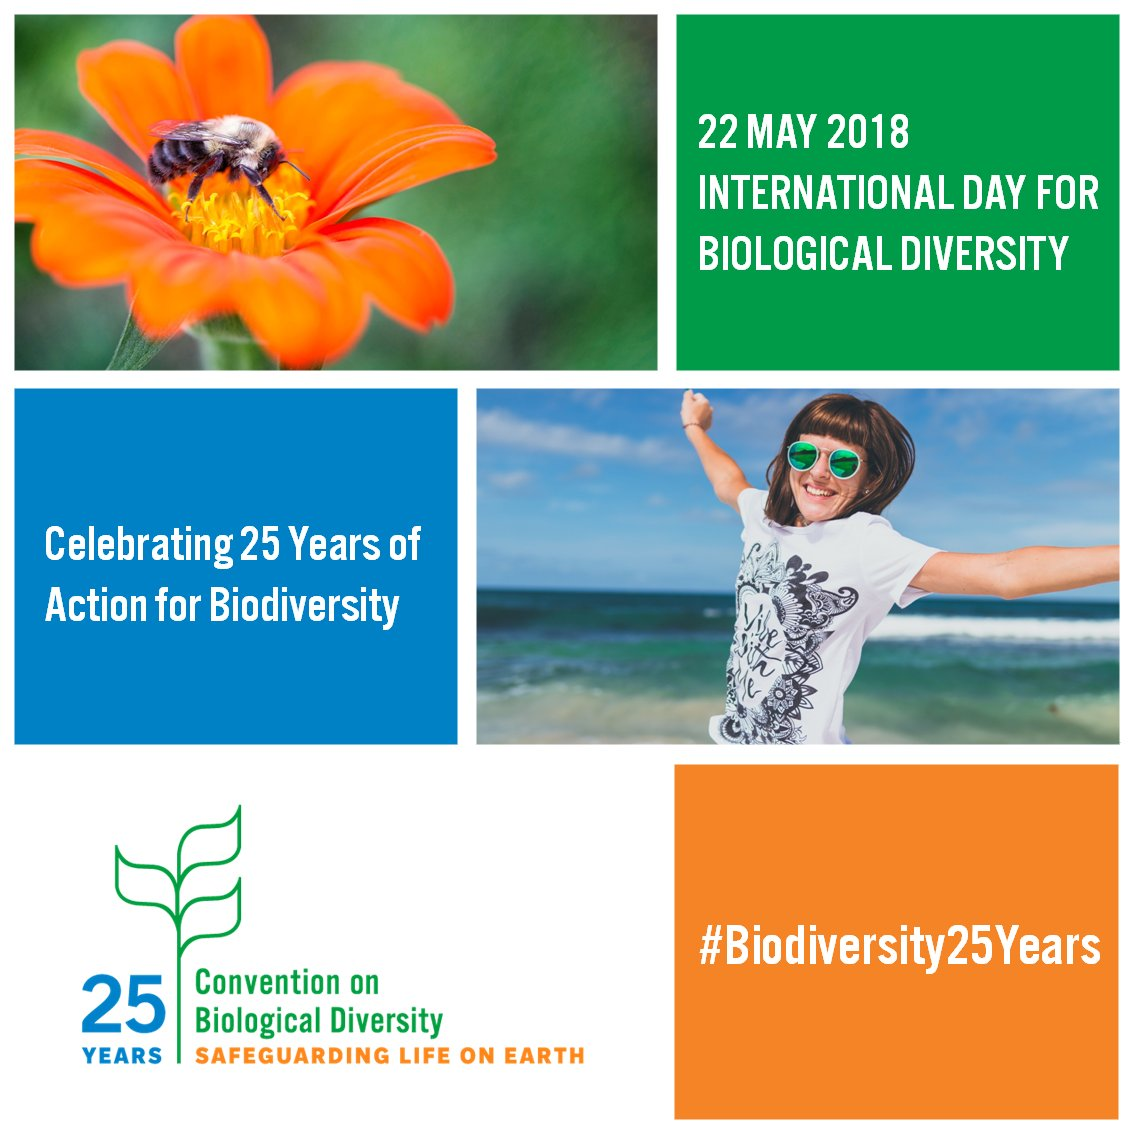 Happy #IntlBiodiversityDay! Today we celebrate nature's beauty & wonder, and all the people working hard to safeguard it. Much progress has been made, but there's still much to do. Let's redouble efforts to preserve Earth, our only home  #Biodiversity25Years@CBDNews